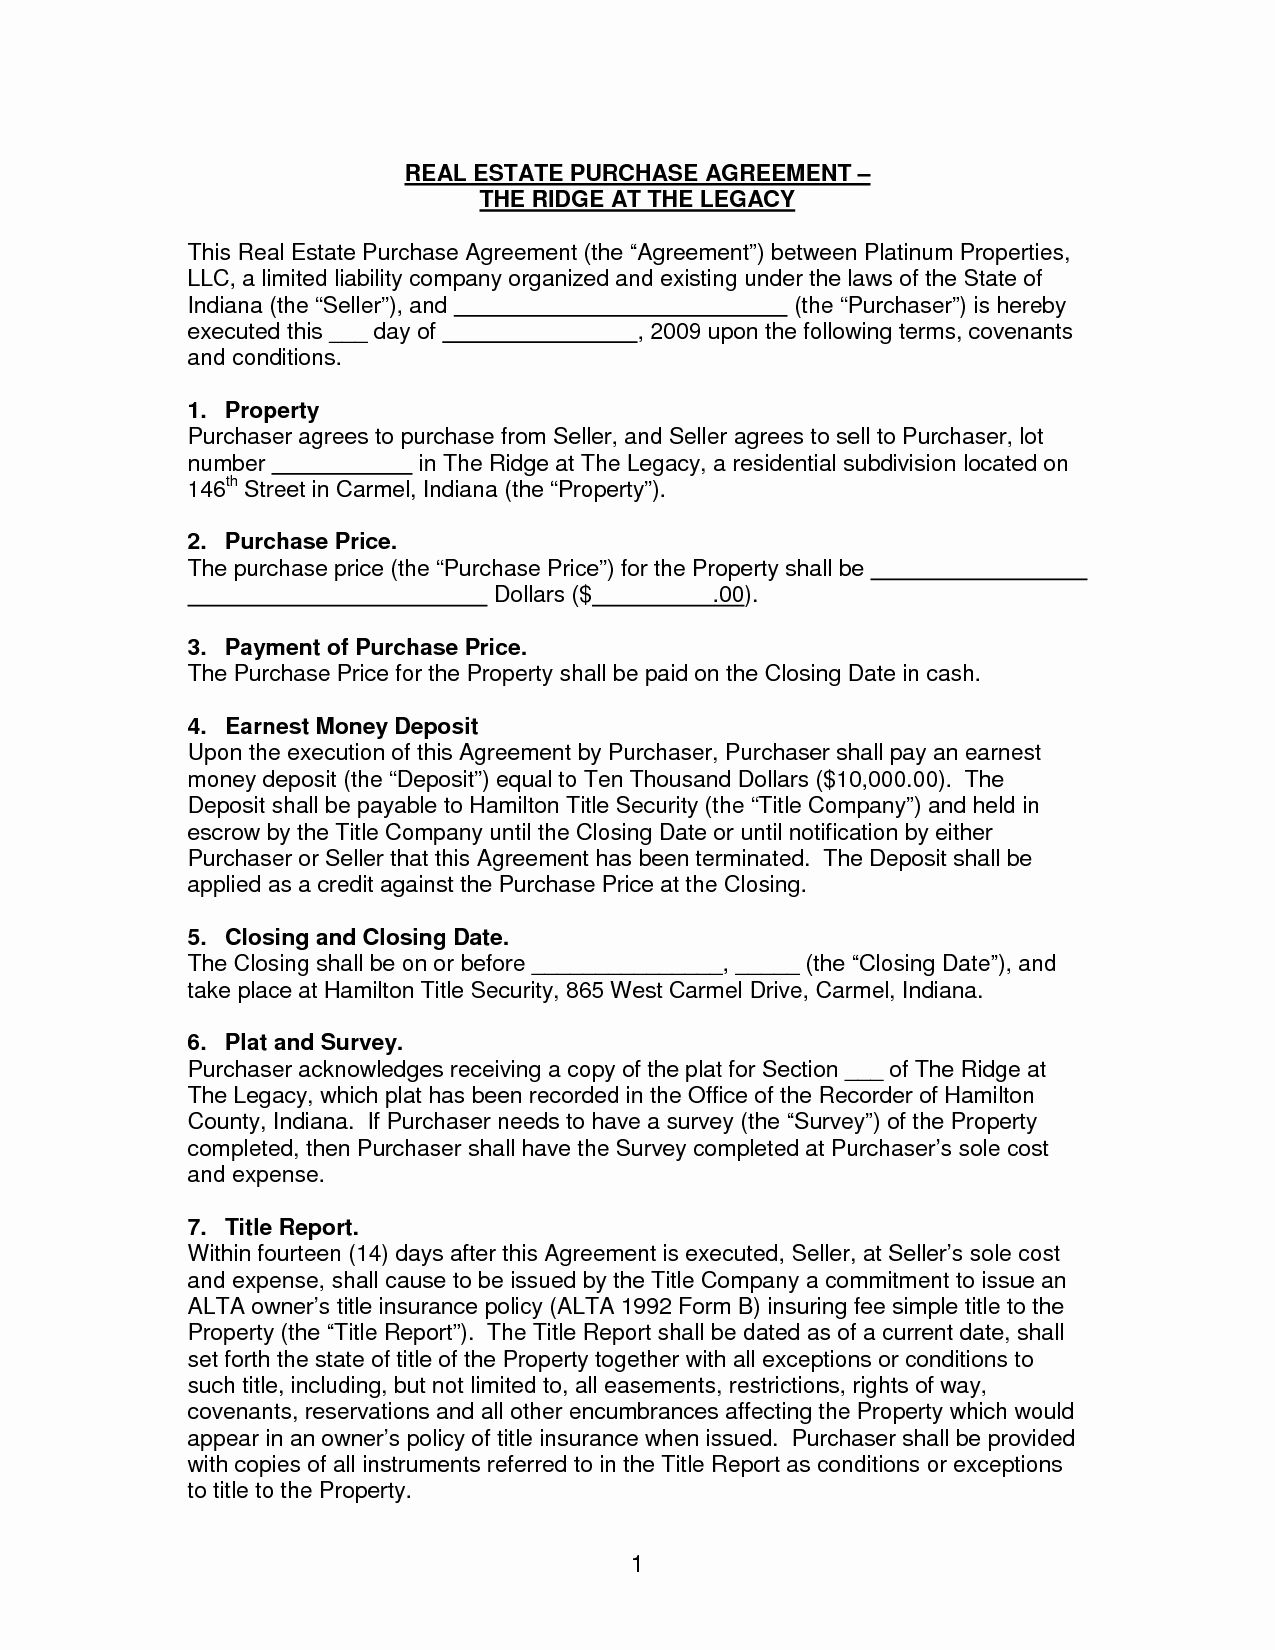 Simple Real Estate Contract Lovely Your Blog Dunnfxpouzrplo Real Estate Contract Contract Template Purchase Agreement